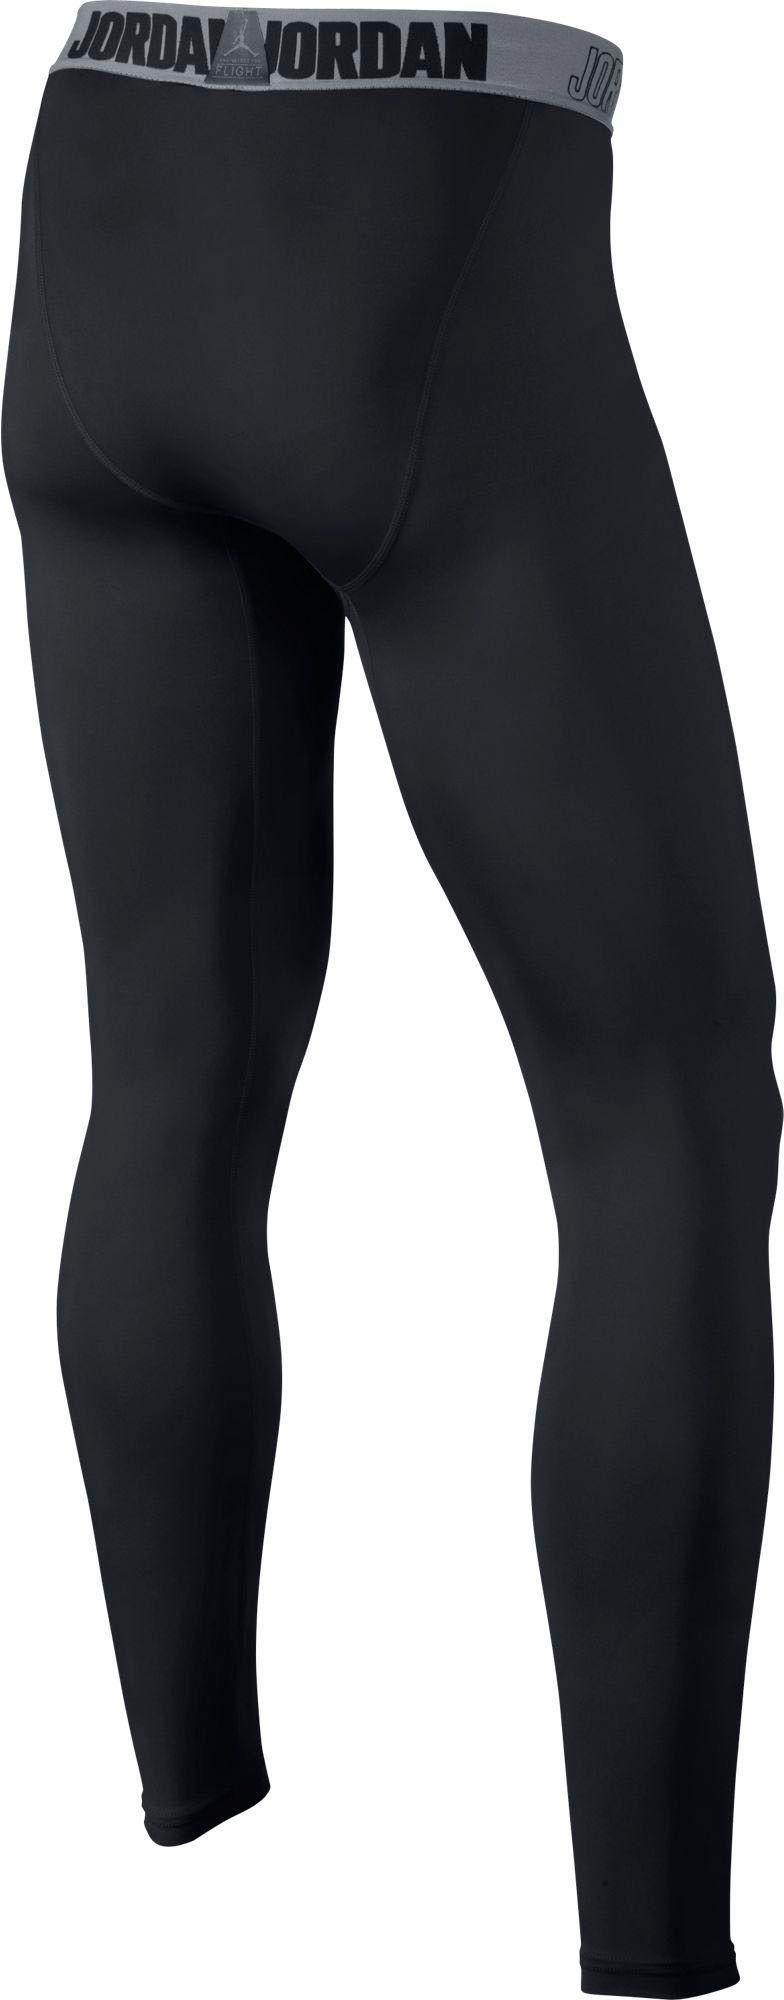 Lyst Nike All Season Compression Tights In Black For Men